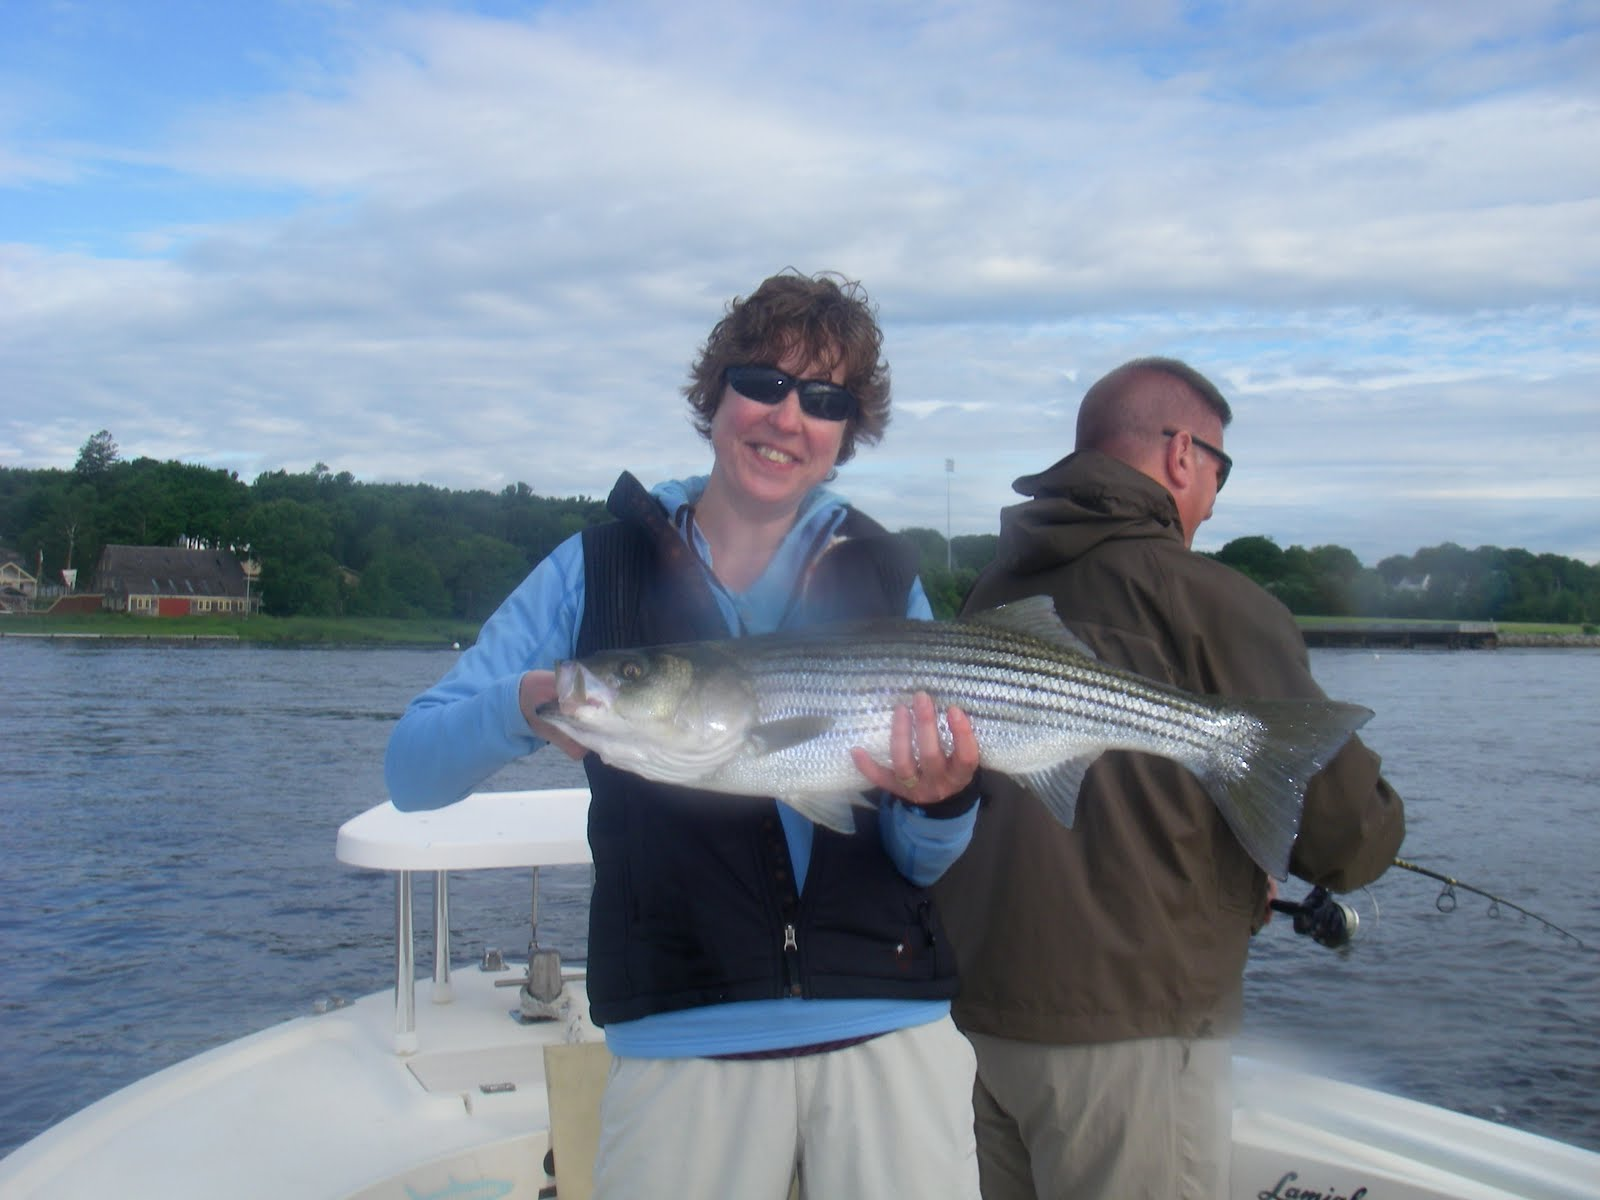 Fly fishing trips vacations equipment gear maine for Saltwater fishing in maine